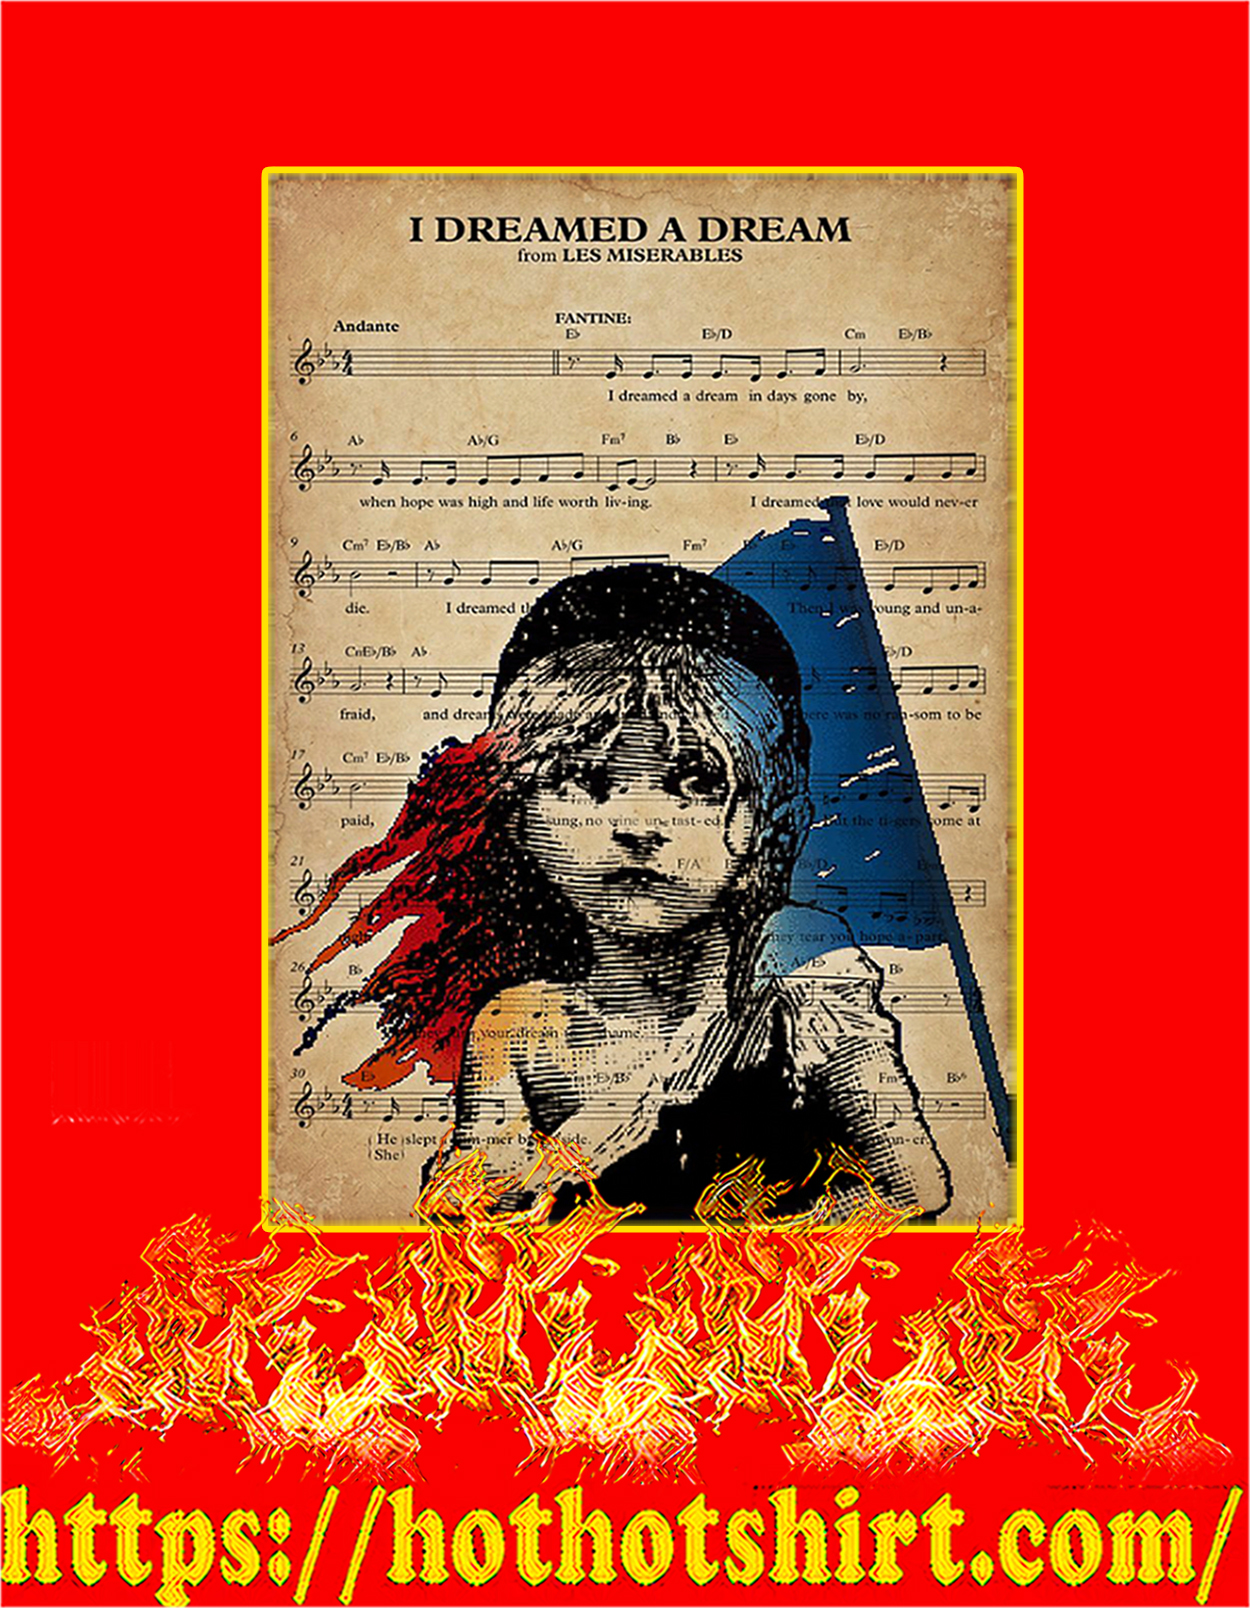 I dreamed a dream from les miserables poster - A3